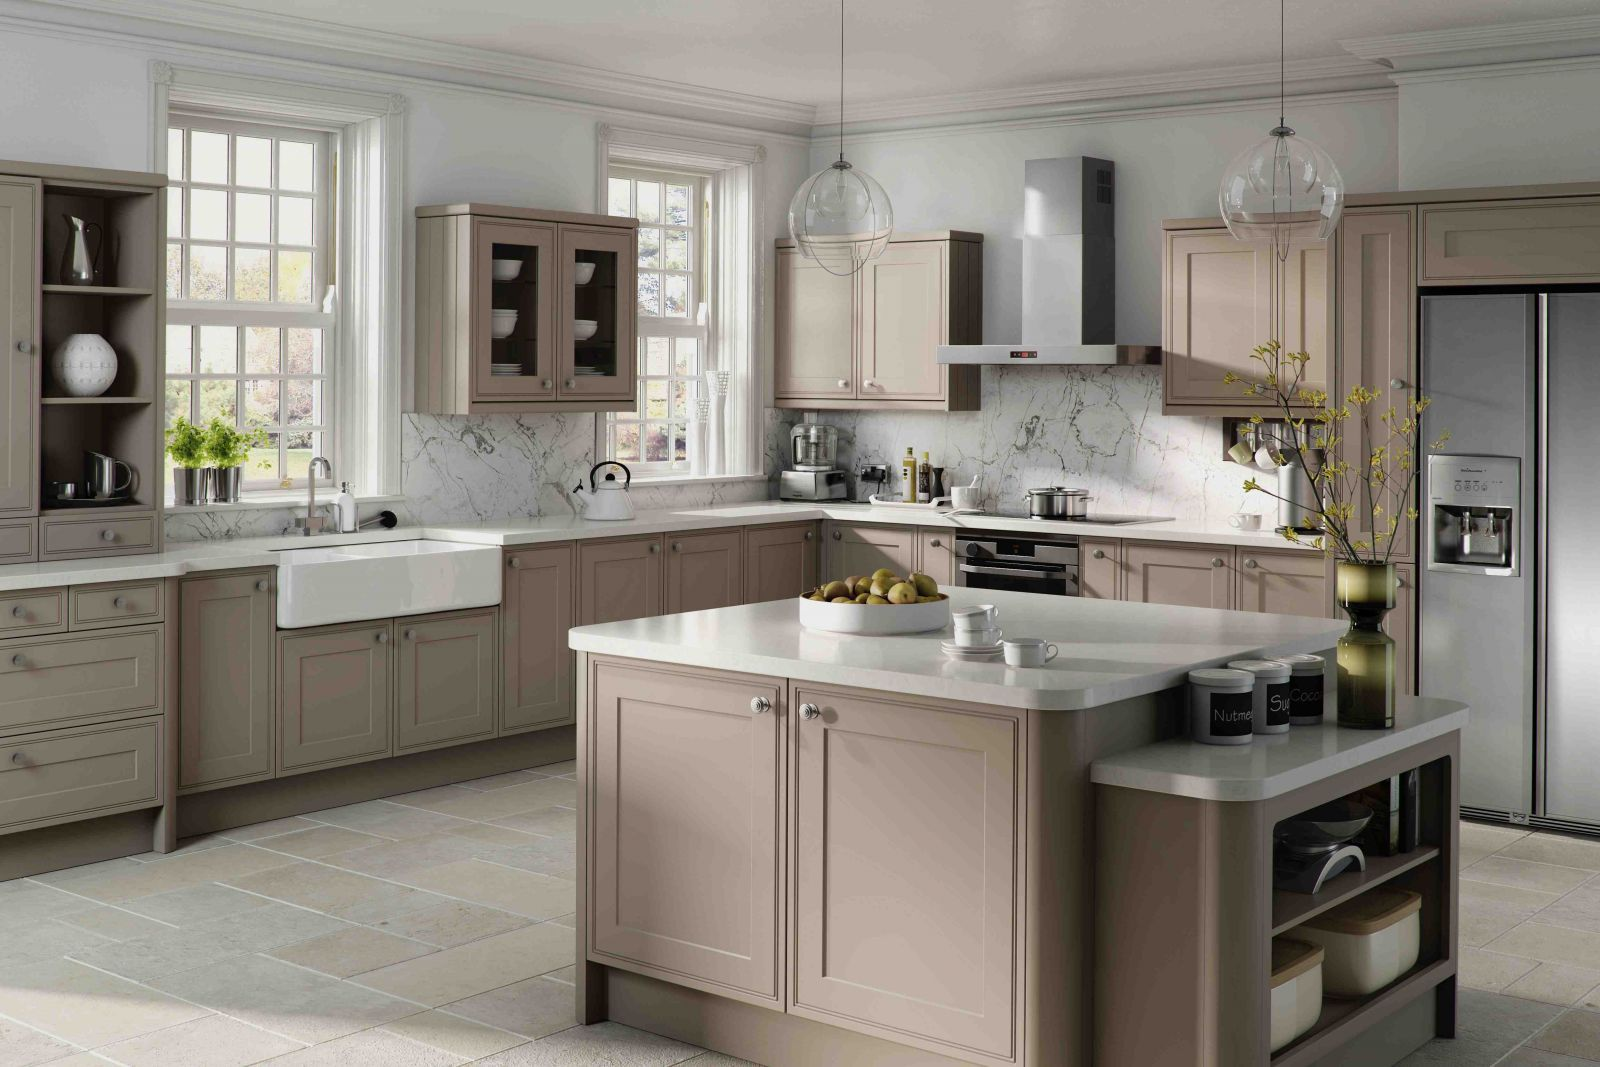 Best Kitchen Gallery: Taupe Kitchen Cabi S And White Countertops Kitchendesign of Taupe Kitchen Cabinets With White Walls on rachelxblog.com